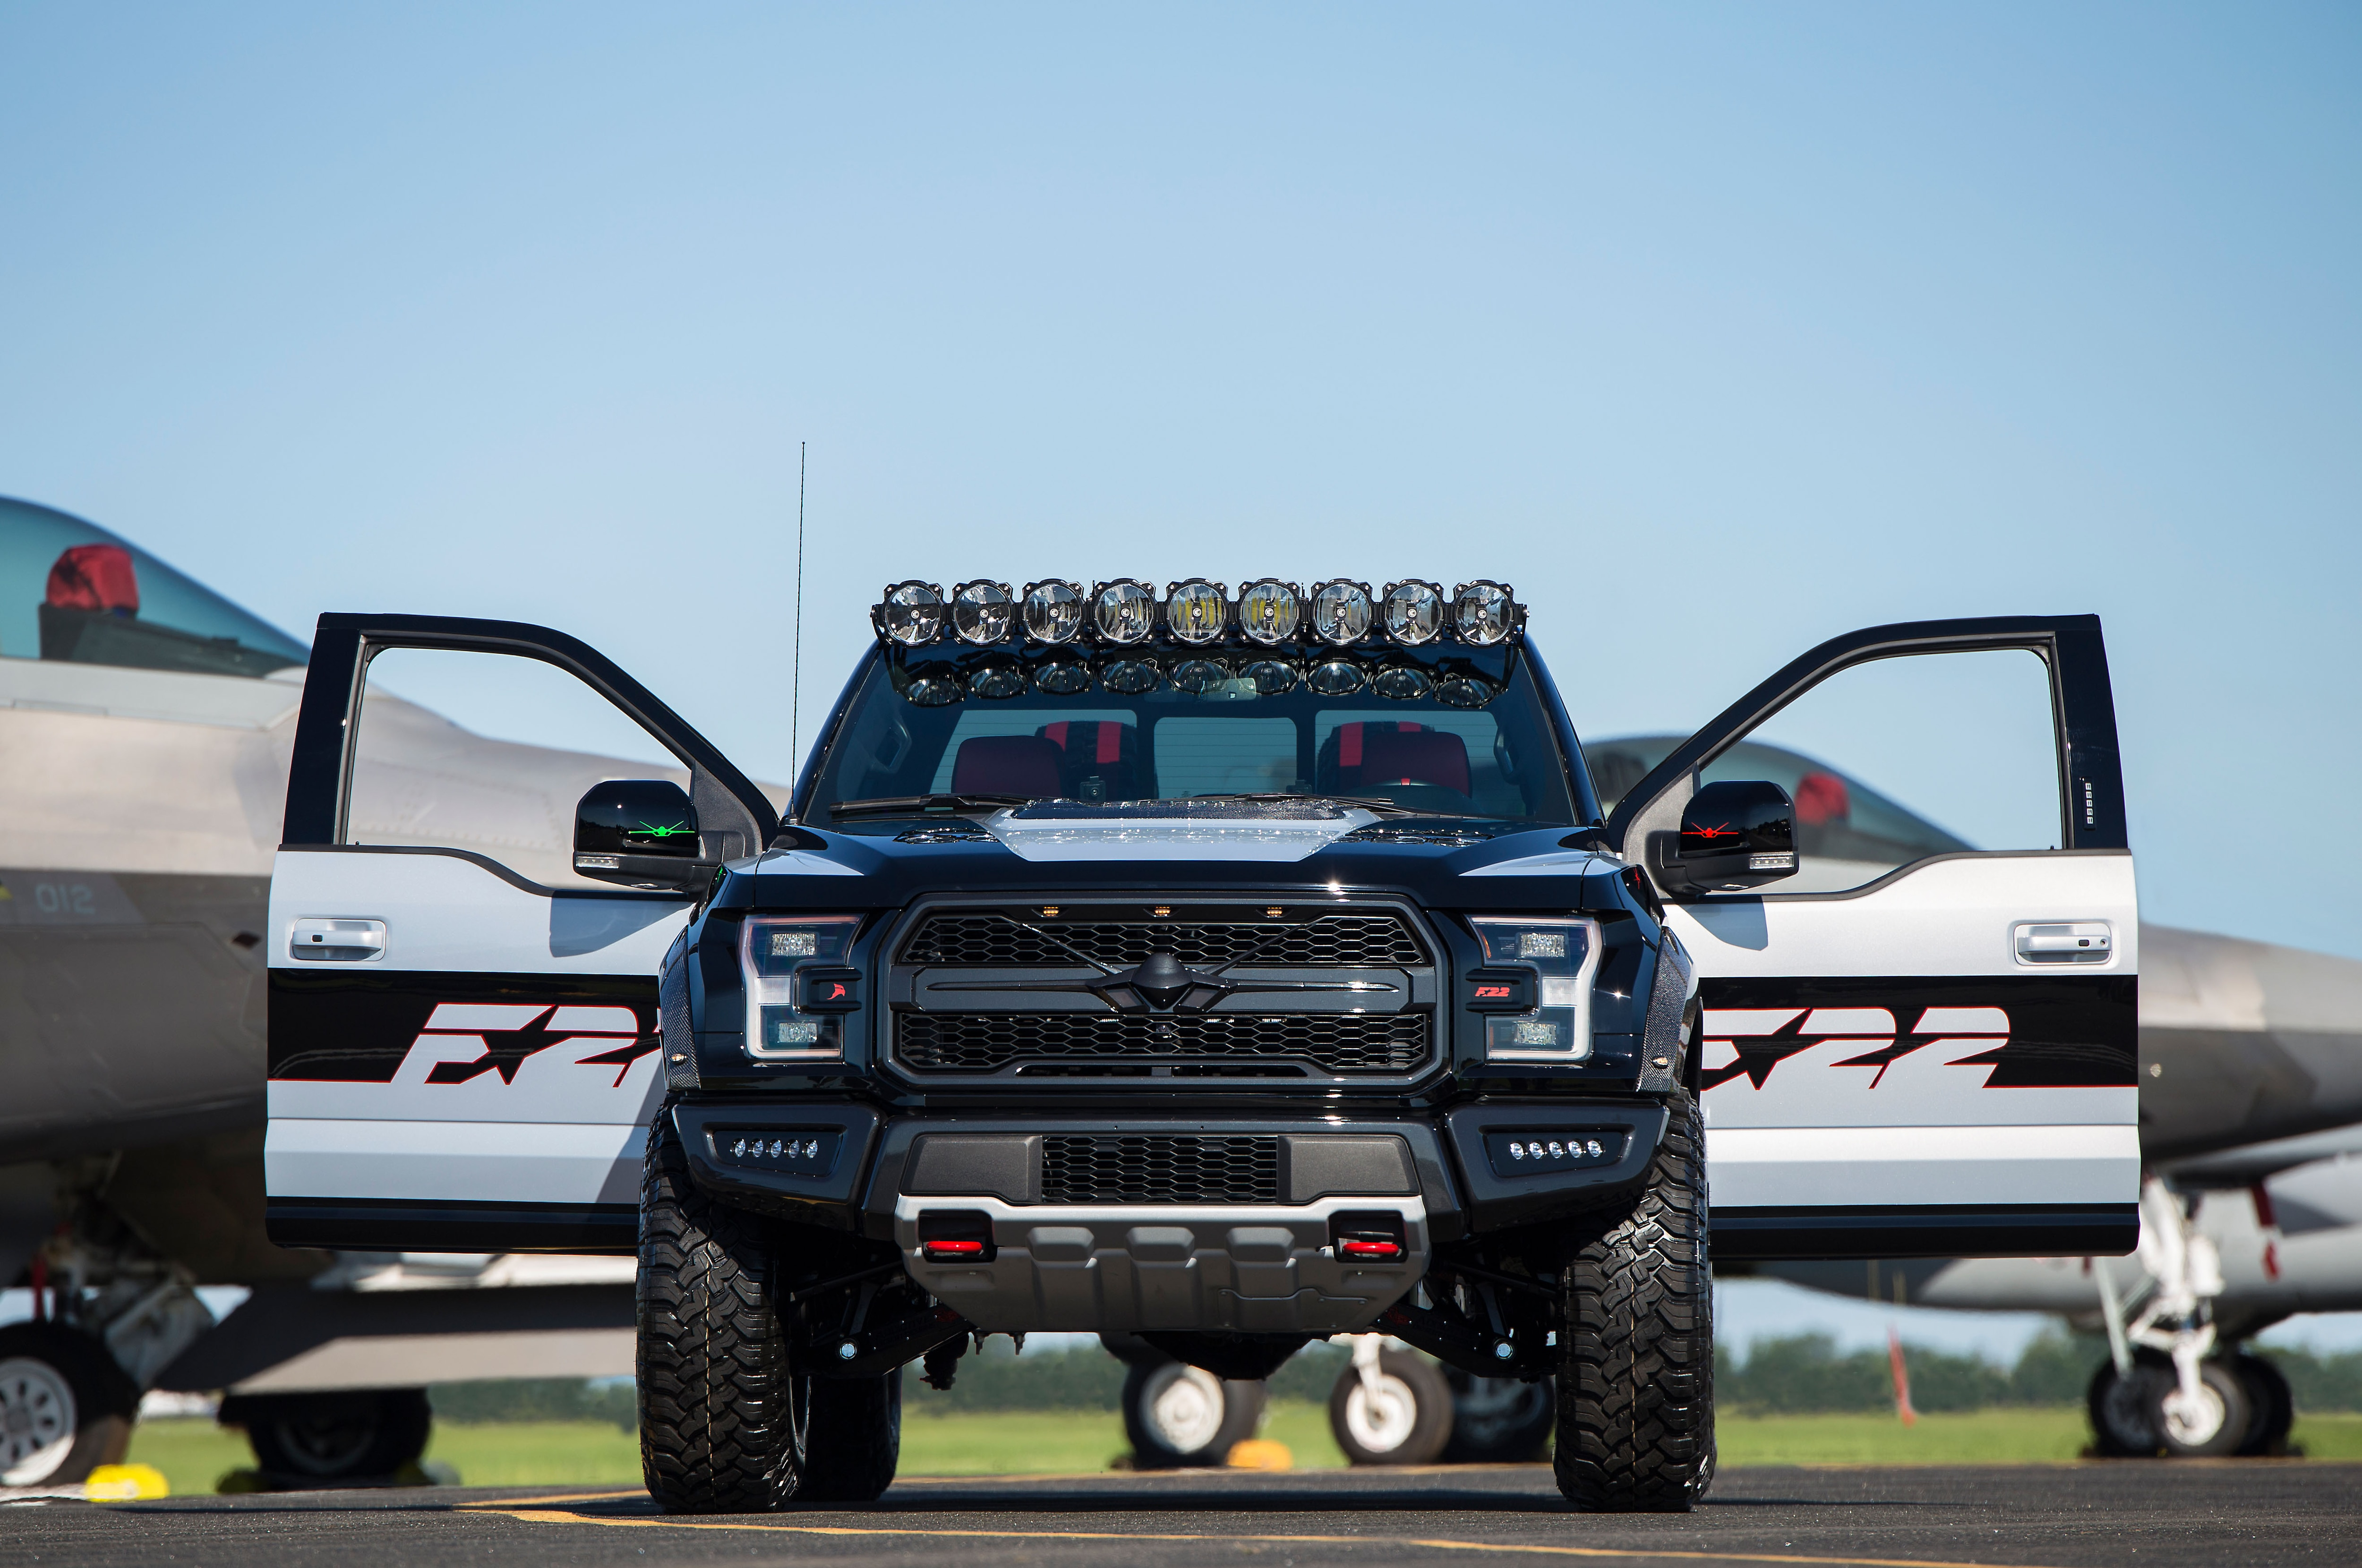 Ford F 22 F 150 Raptor Doors Open Close Up